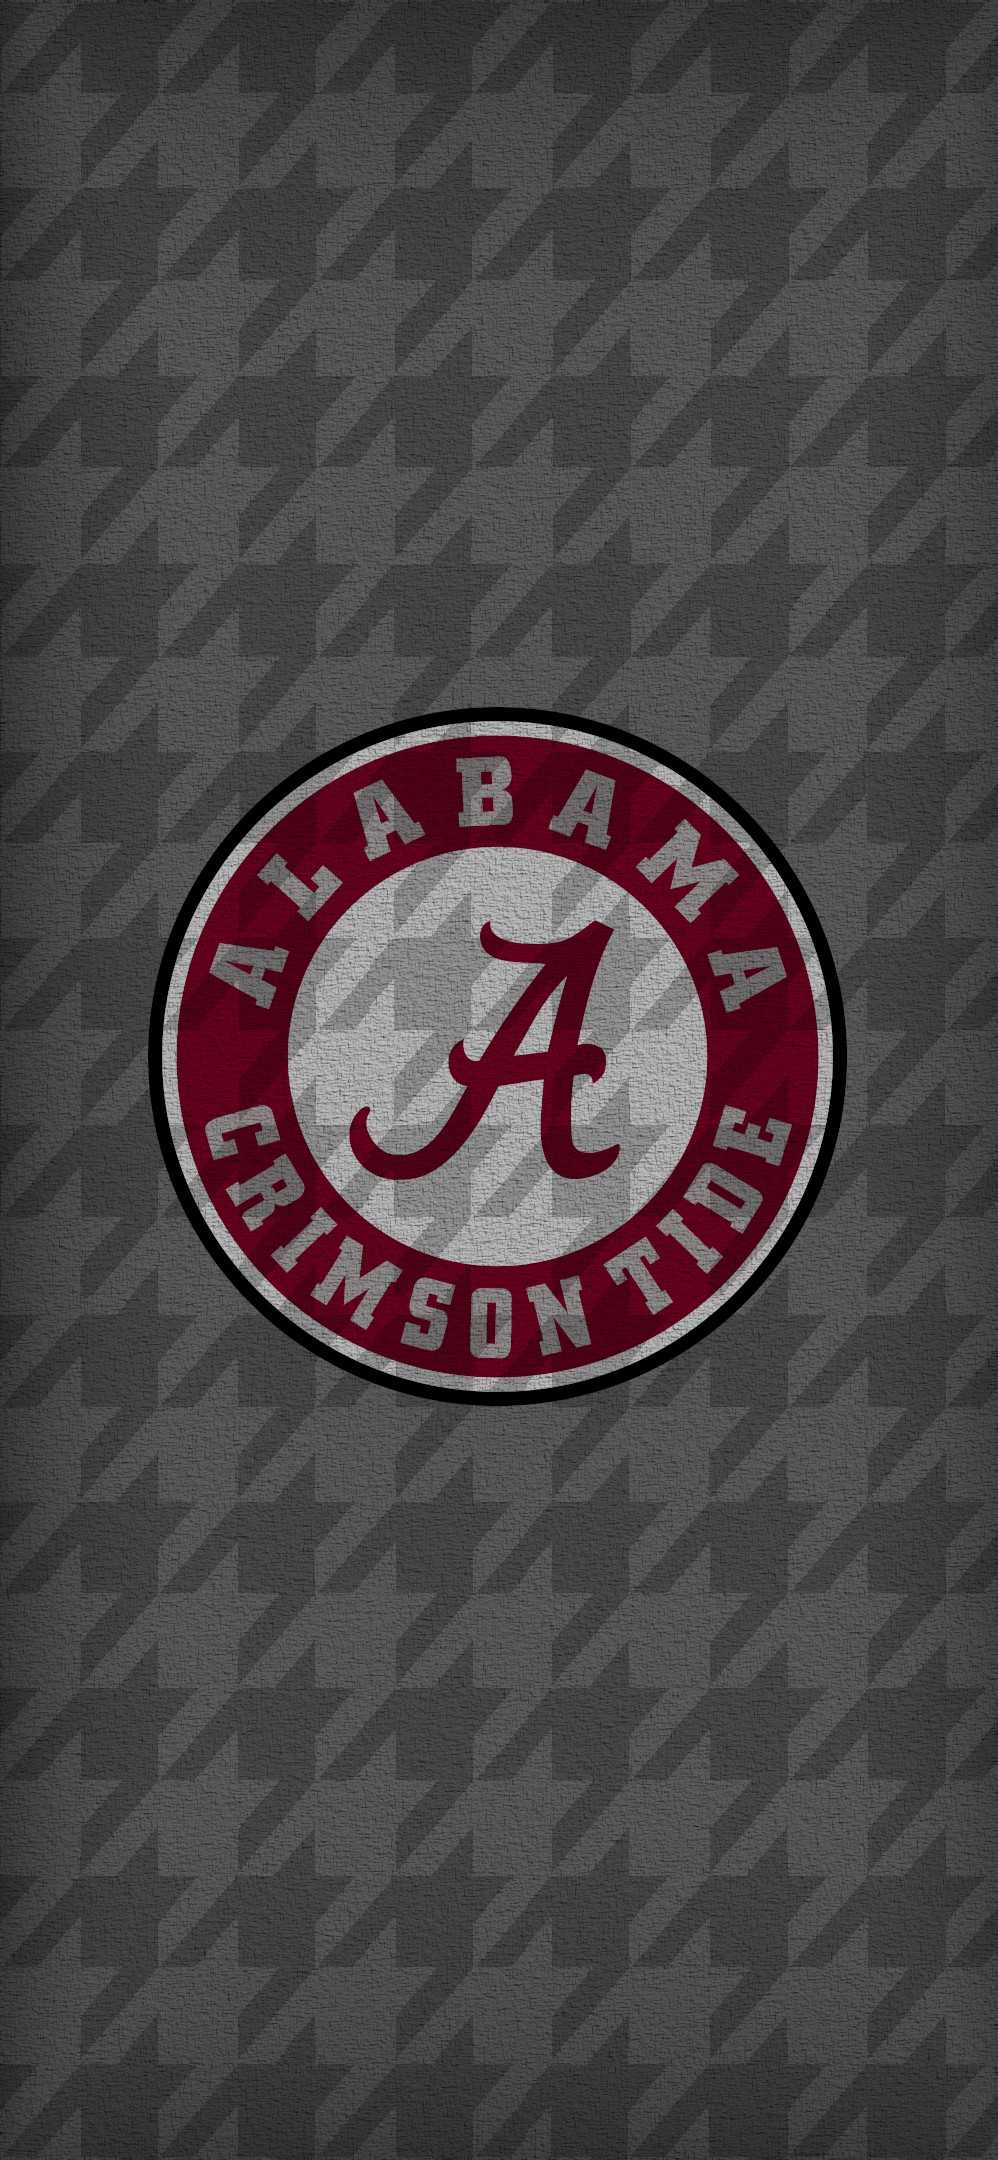 Alabama Crimson Tide Wallpaper 9